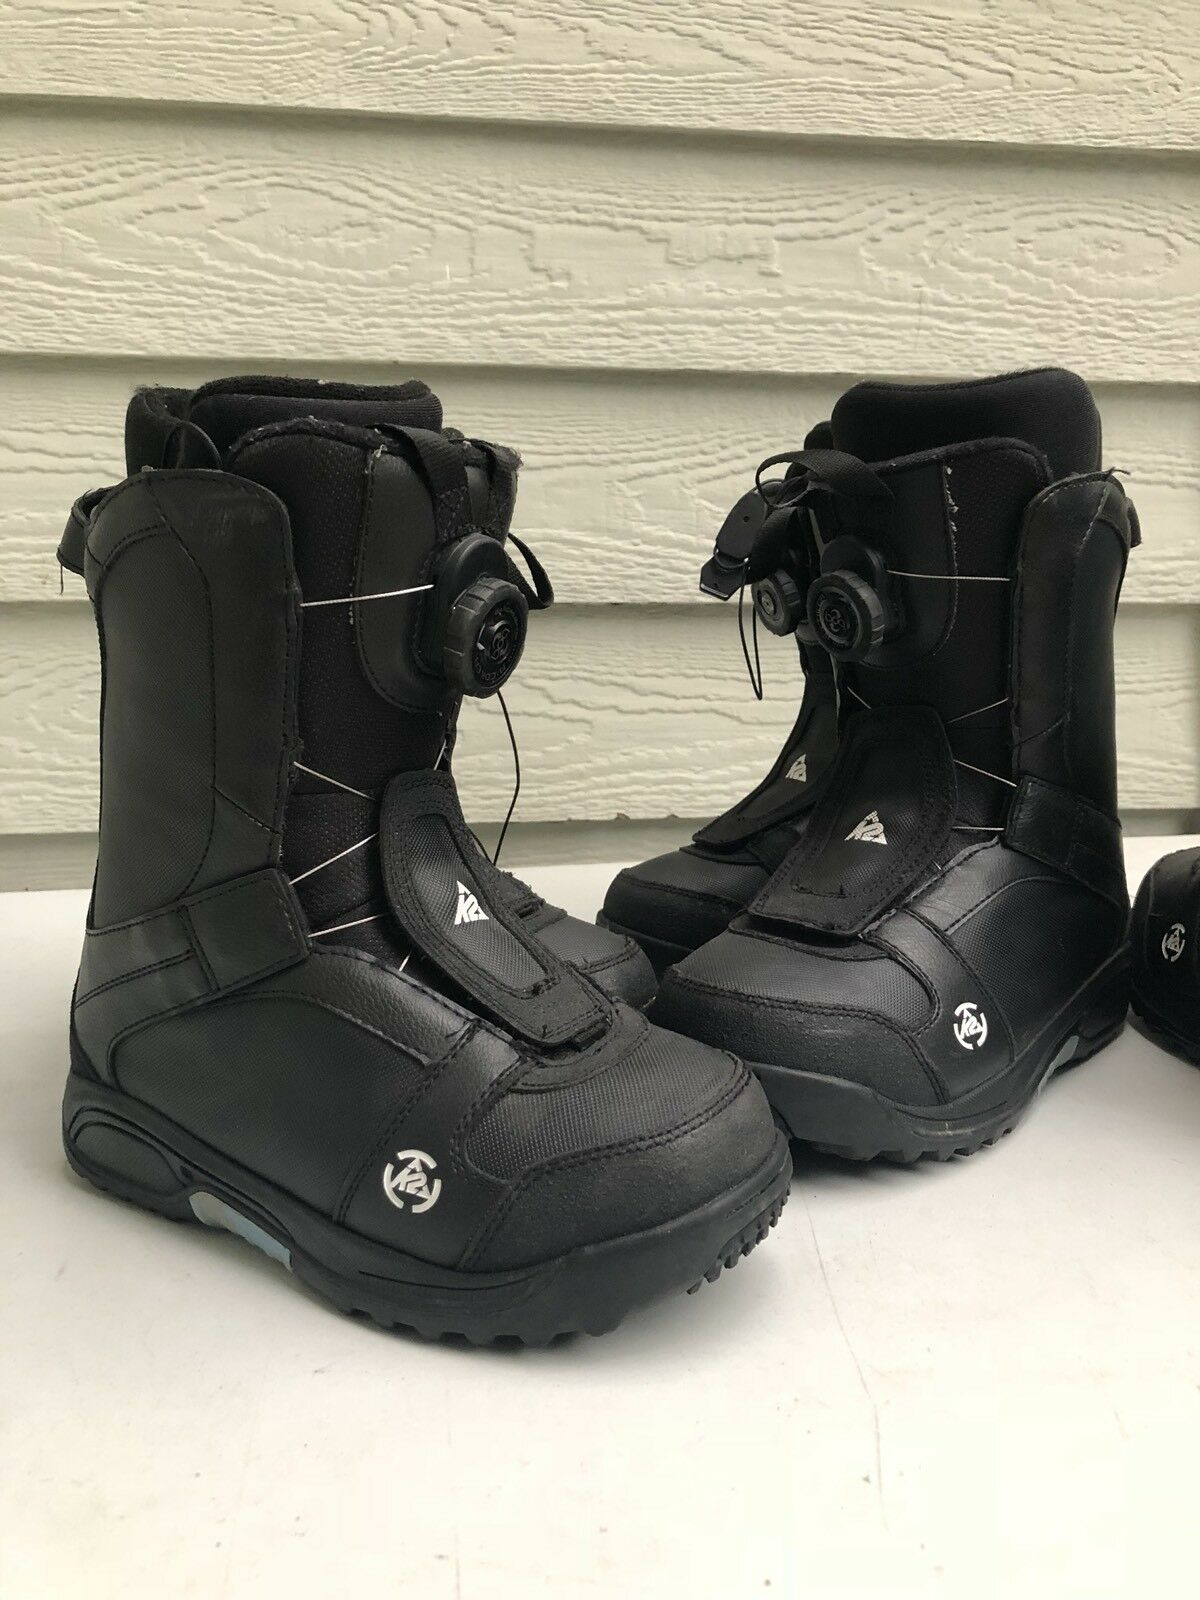 K2 Raider Boa Coiler Women's Snowboard Boots - EXCELLENT CONDITION